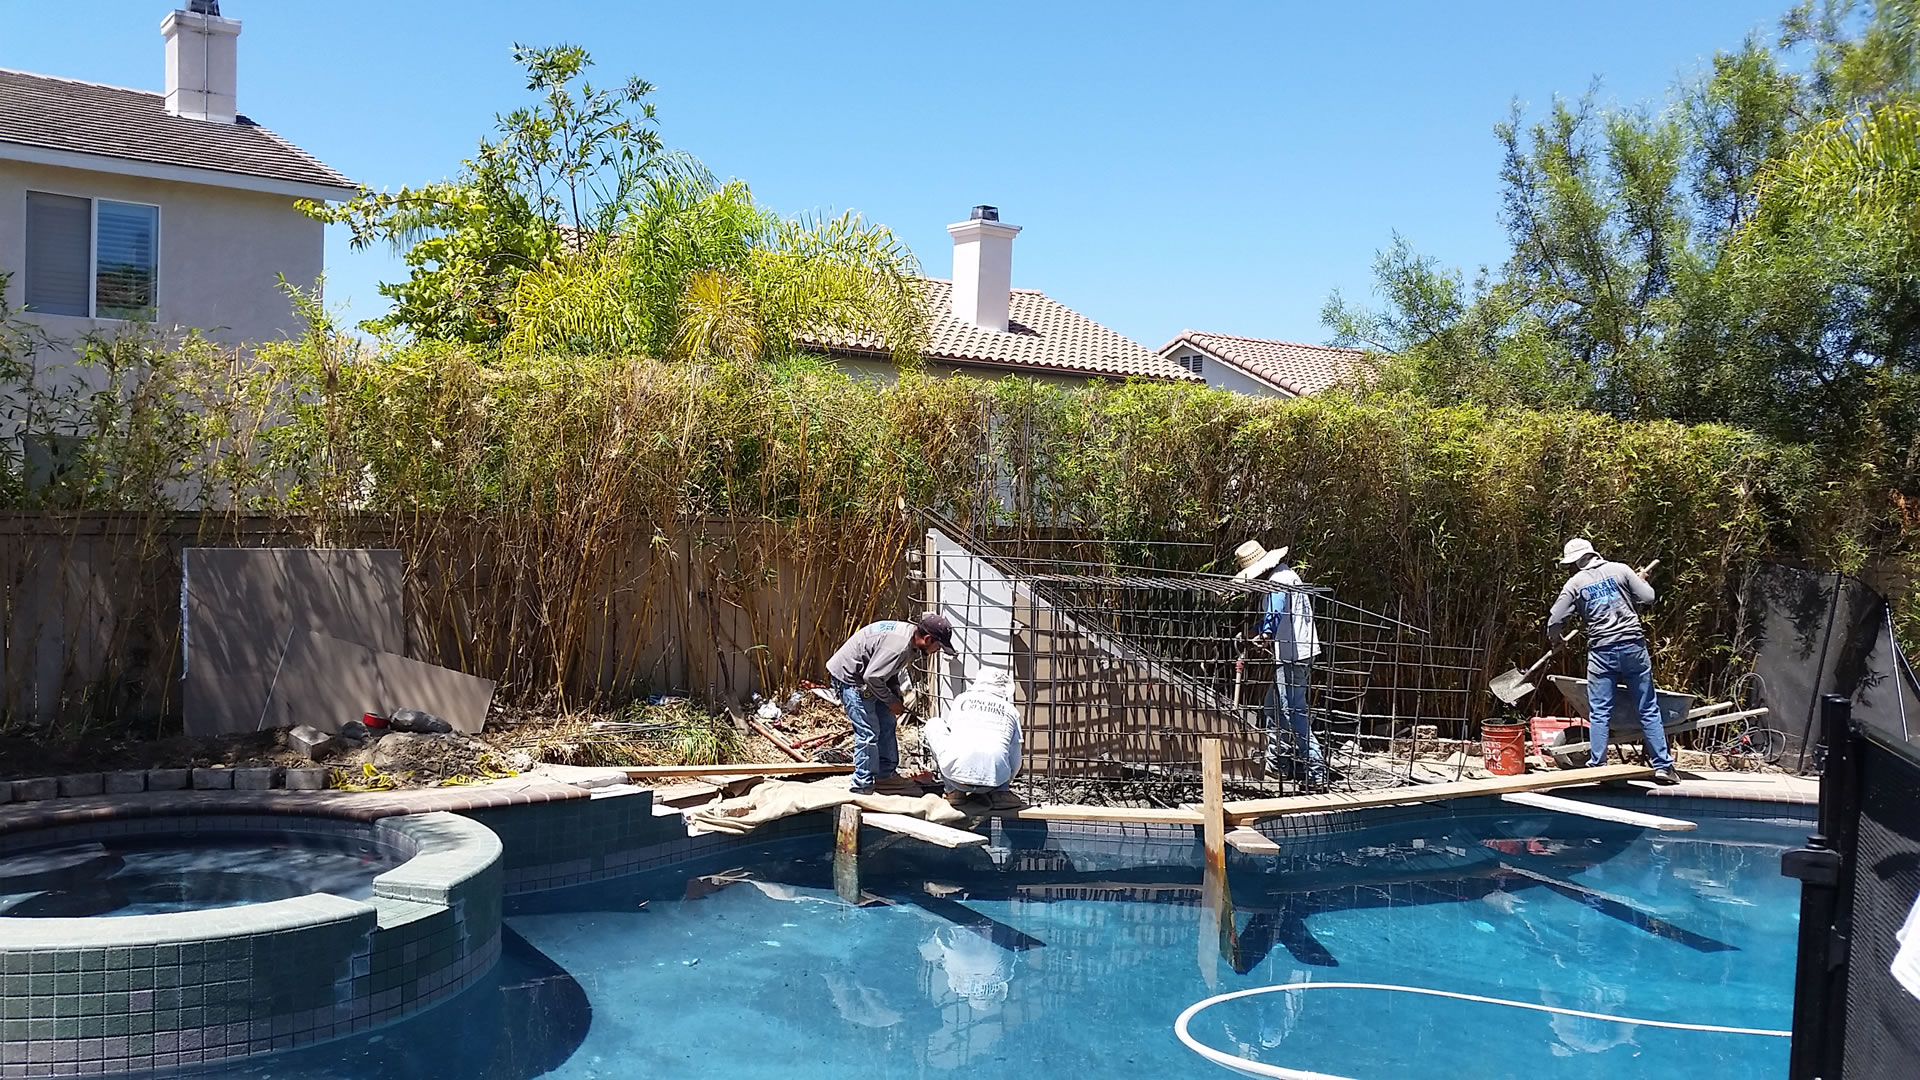 Remodel Your Pool and Spa